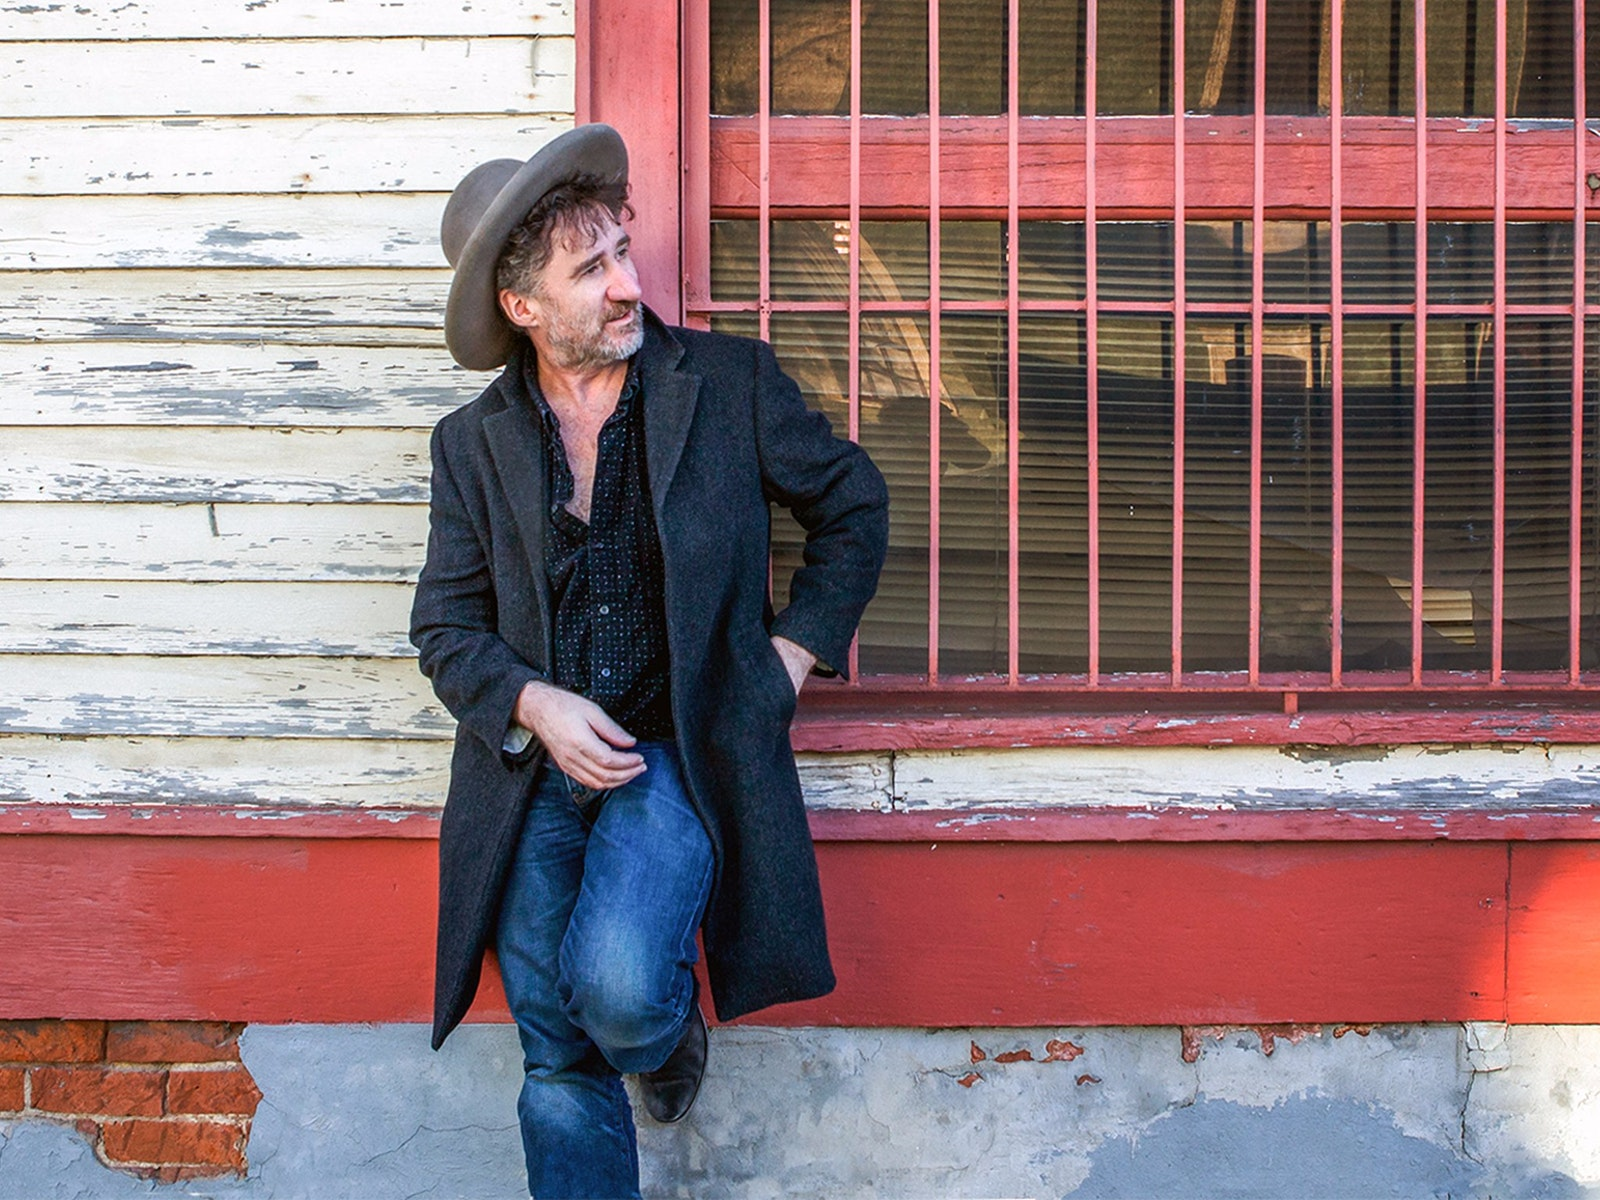 Jon Cleary will be performing this November at Bird's Basement